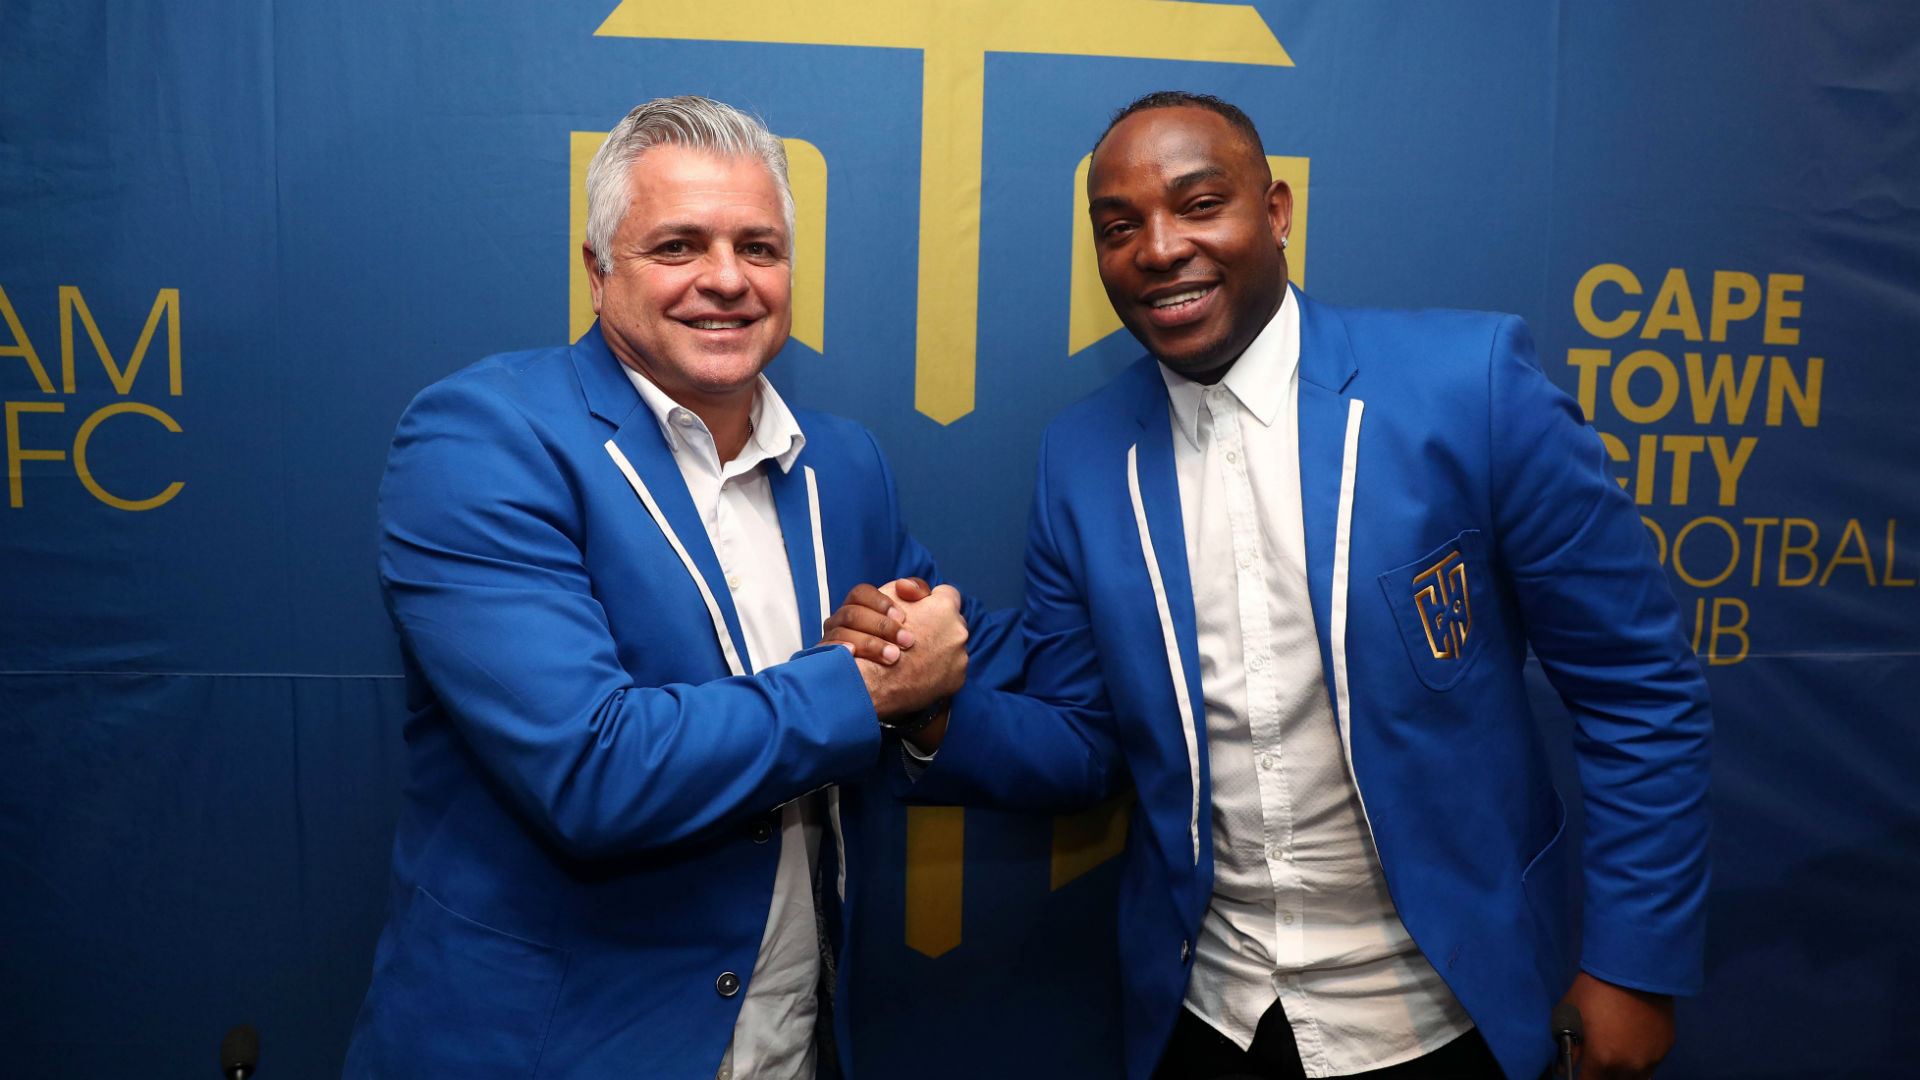 Benni McCarthy bags his first cup as coach